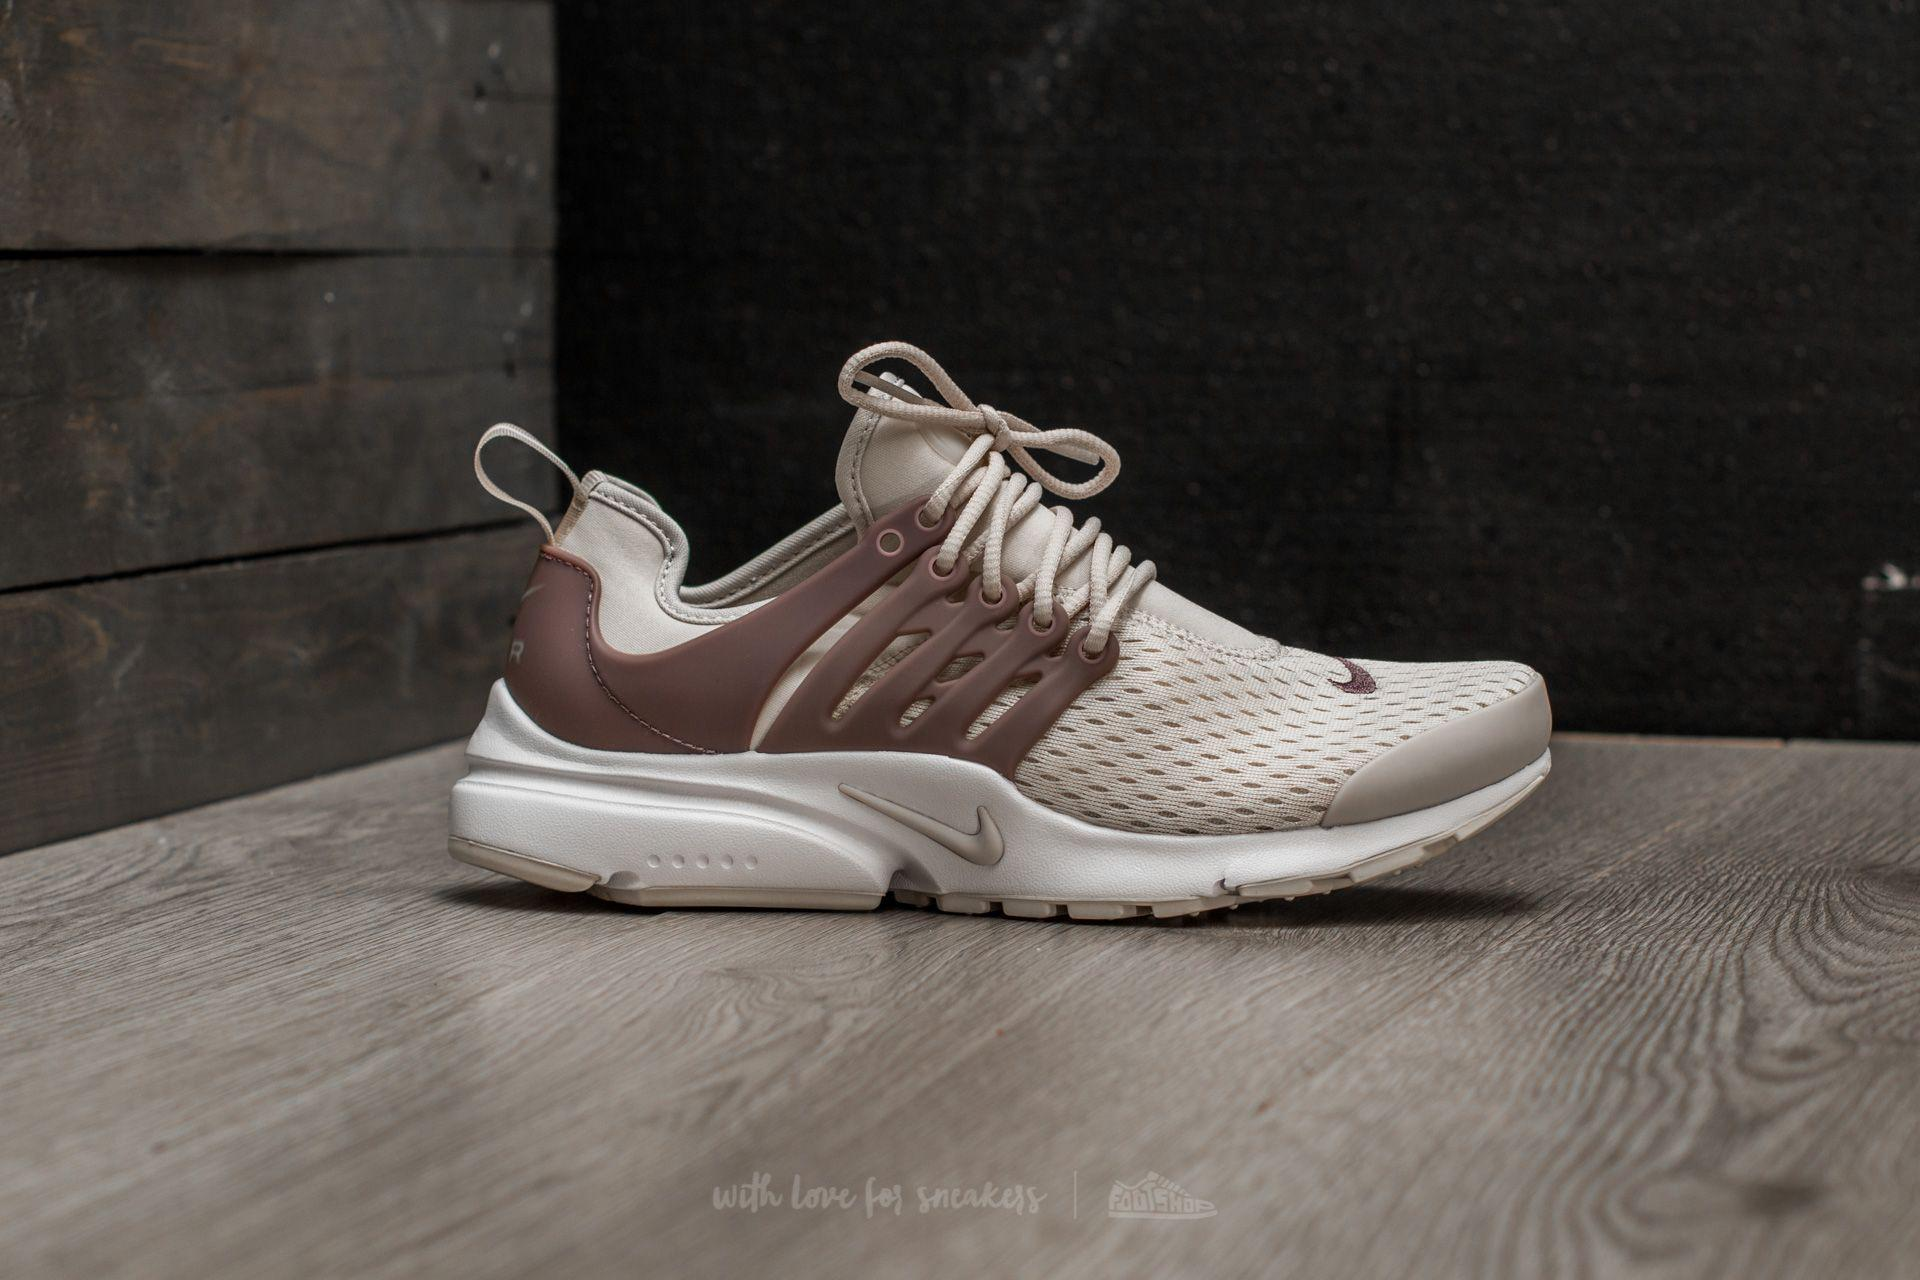 402dde849601 Lyst - Nike W Air Presto Light Orewood Brown  Taupe Grey in Gray for Men